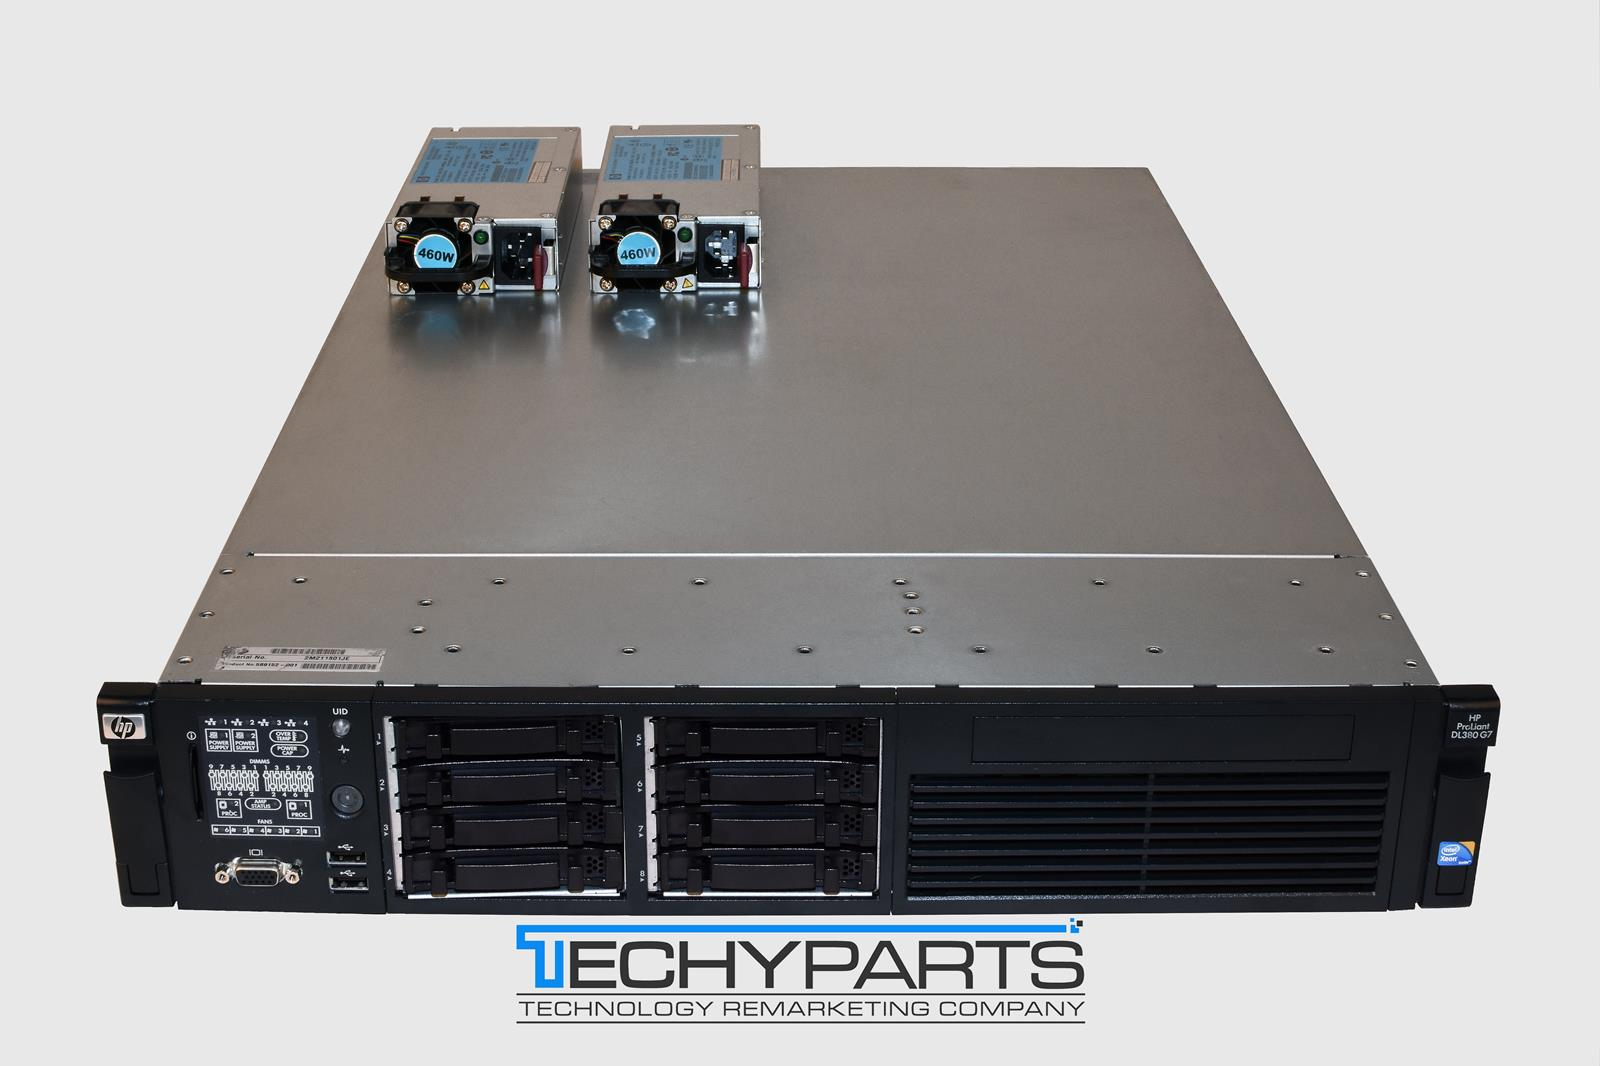 hp proliant dl380 g7 2x 2 4ghz 8 cores 48gb ram 8 bay sff 2x psu ilo3 advanced 884962511886 ebay. Black Bedroom Furniture Sets. Home Design Ideas